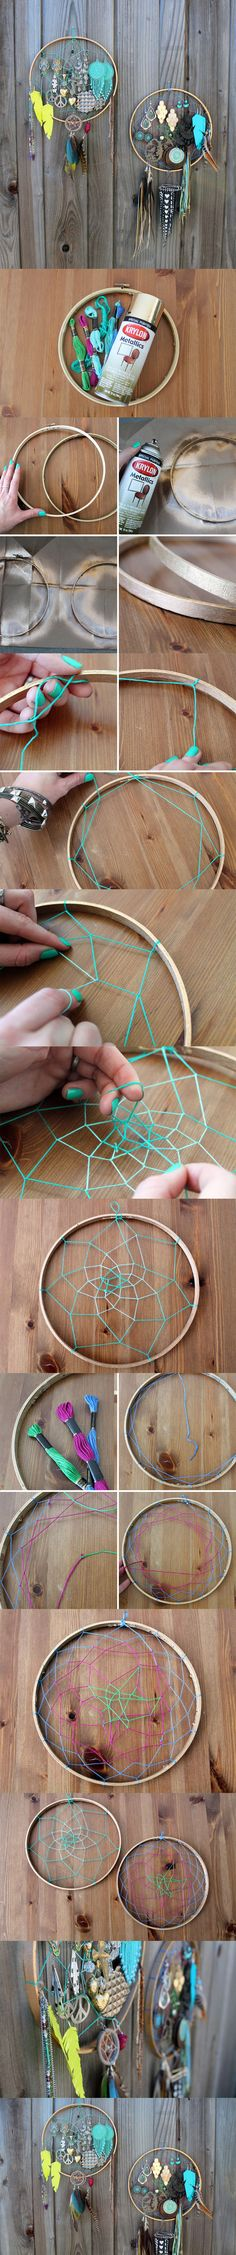 dreamcatcher diy - Love this!